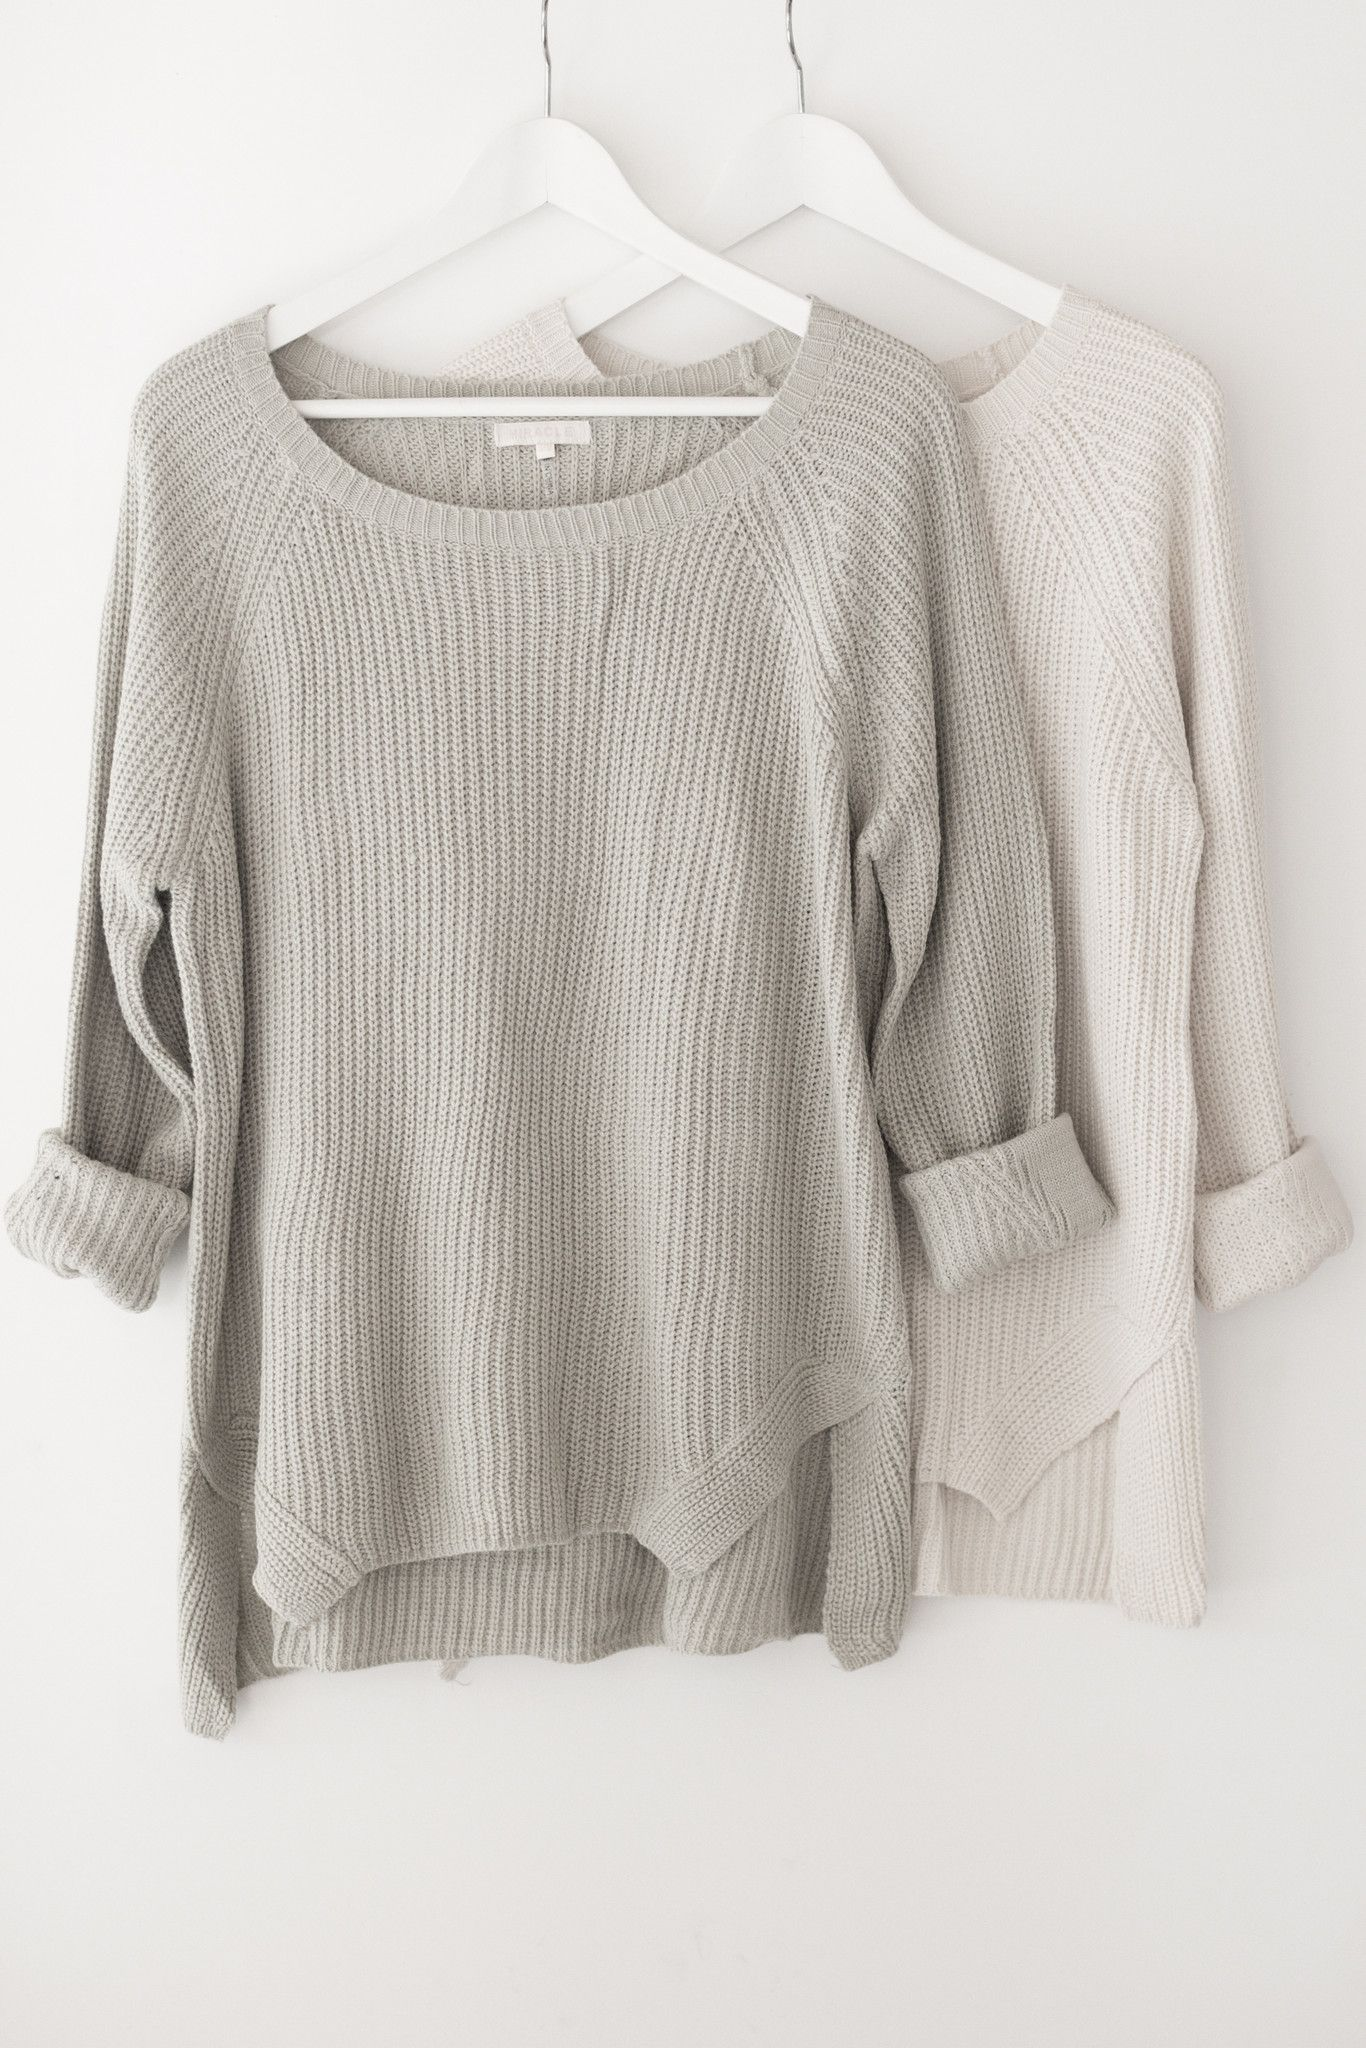 Classic chunky knit sweater - Round neckline - Long sleeves - Side ...